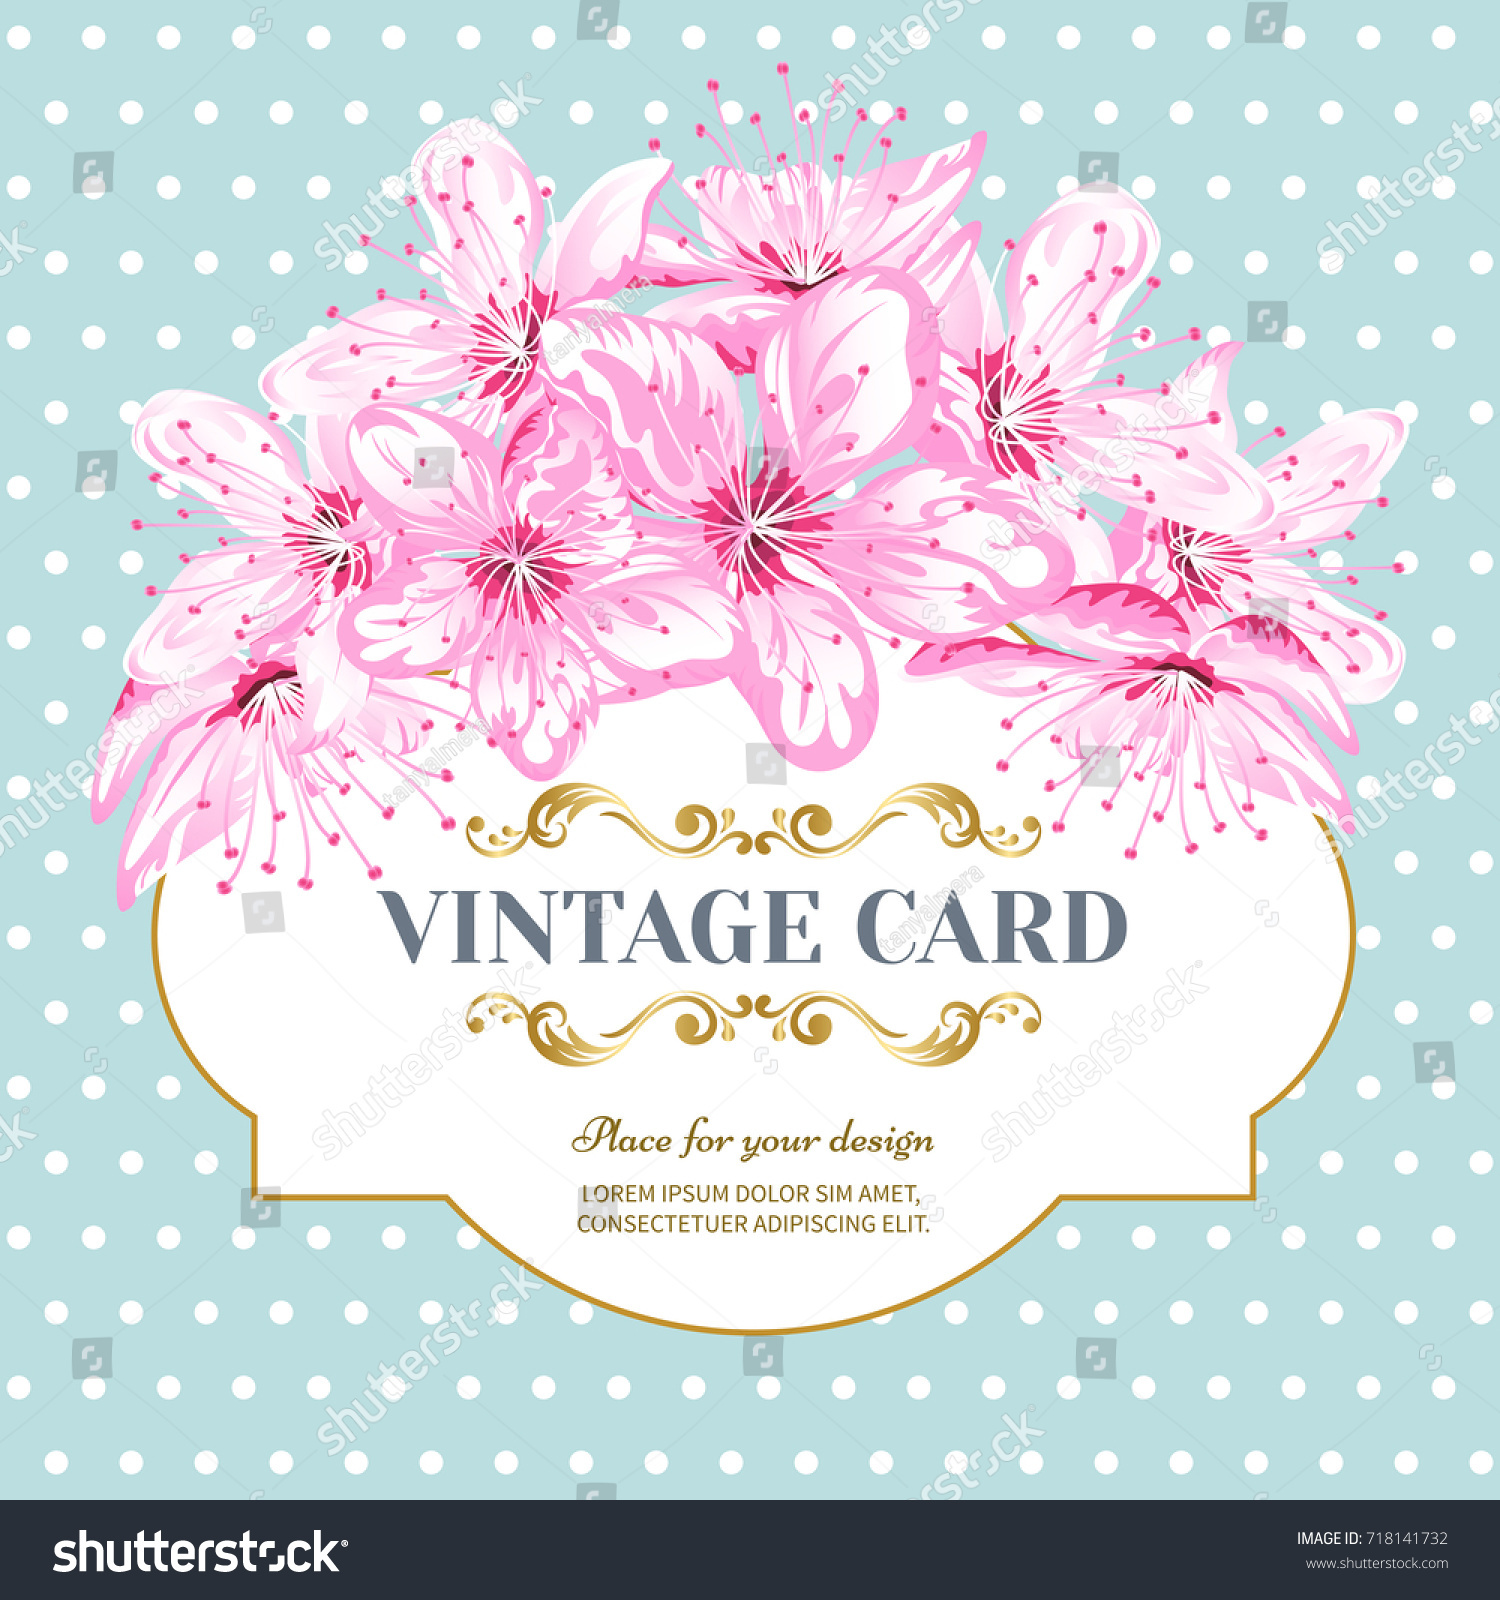 Invitation Card Color Sacura Blossom Flowers Vector – Spring or Summer Theme Invitation Cards